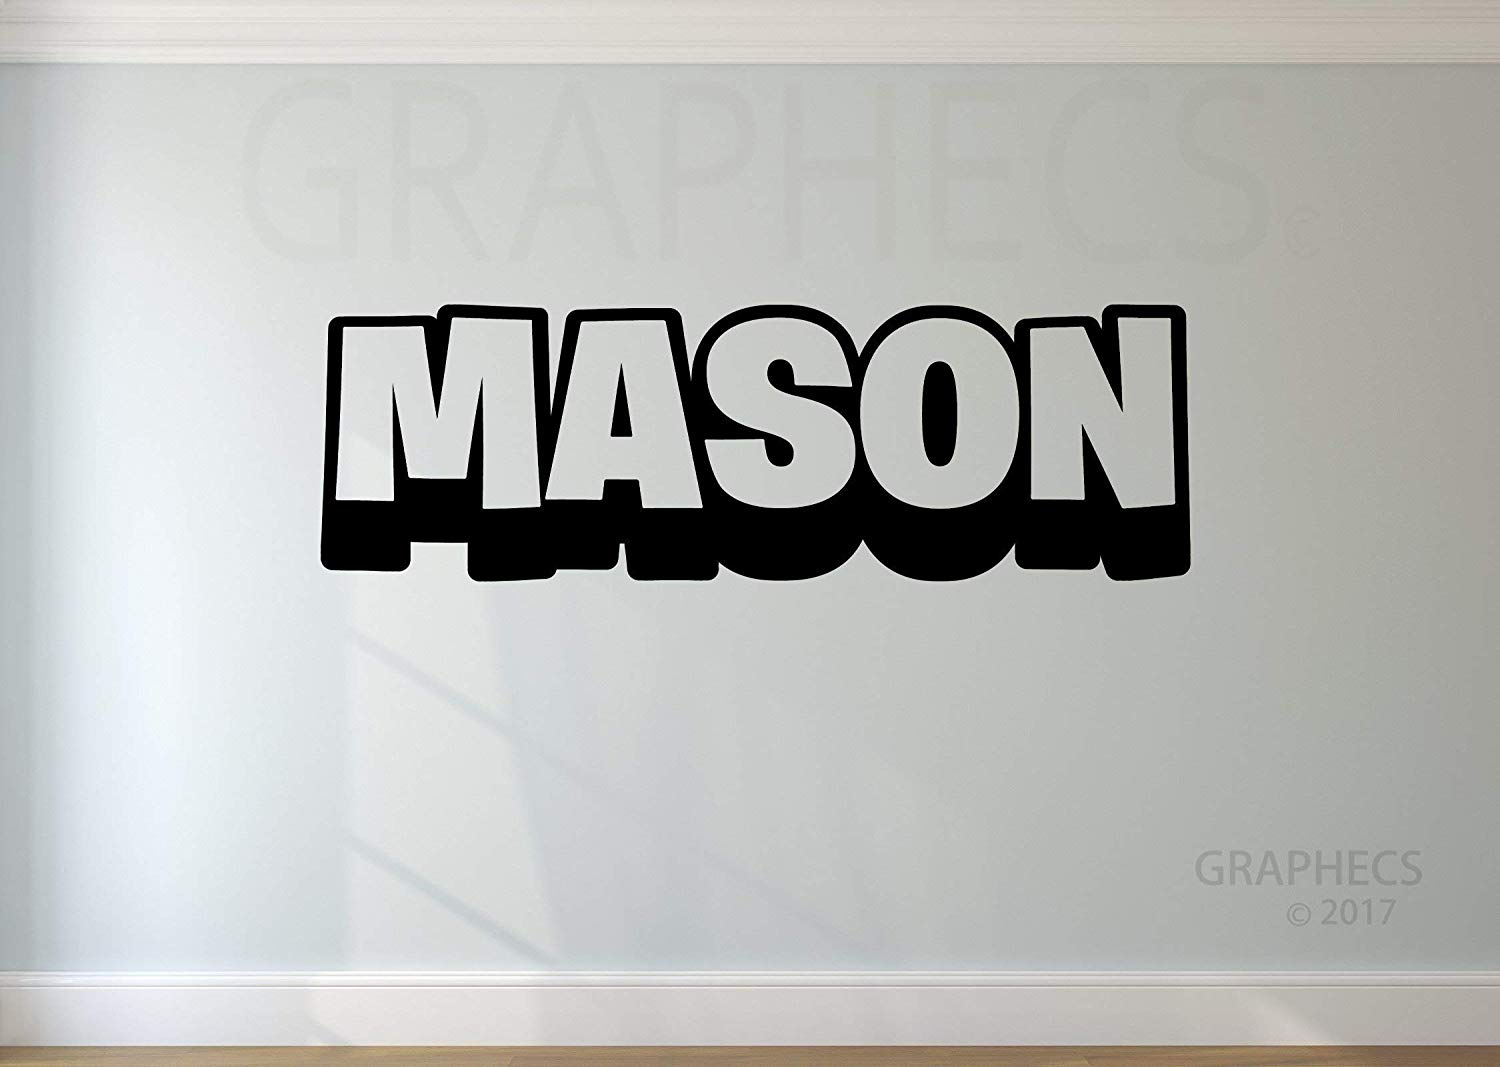 Personalized Gamer Battle 3D Wall Decal - Choose your NAME Custom Gaming Vinyl Decal Sticker Decor Kids Bedroom